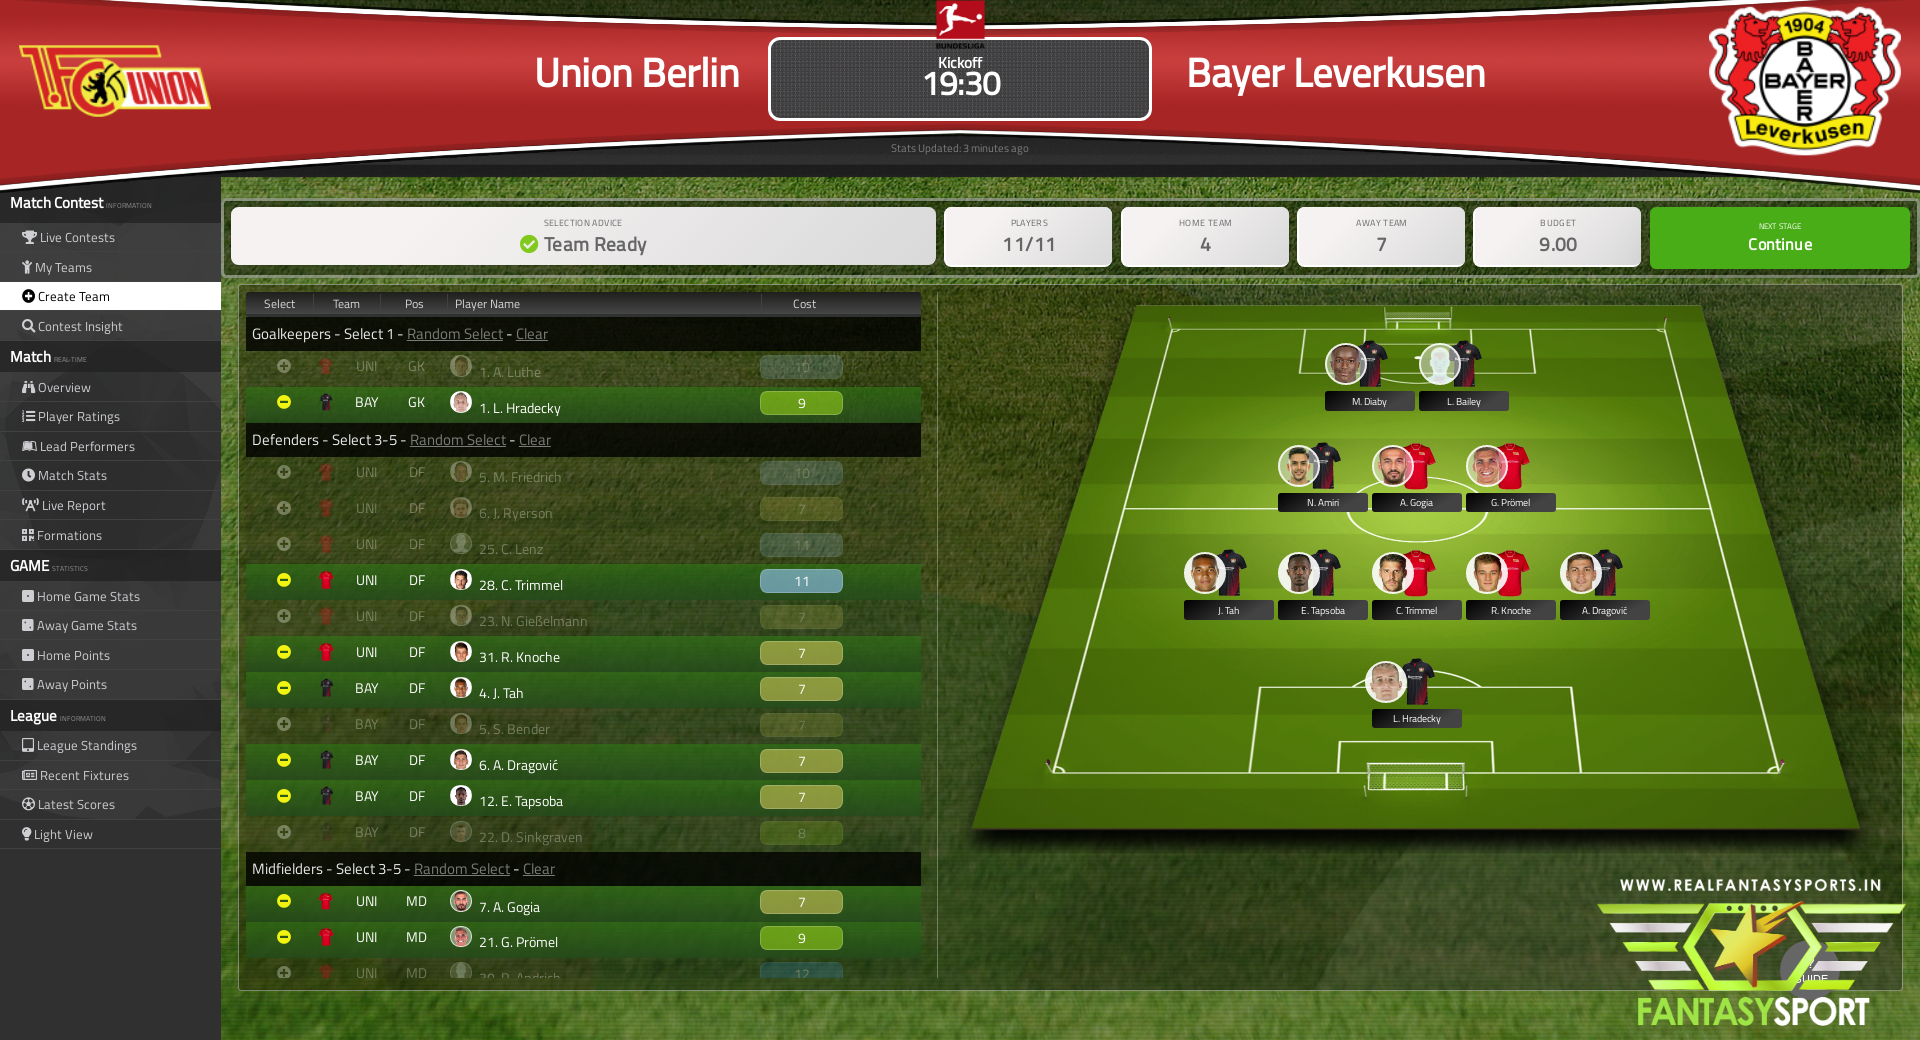 Fantasy Football Union Berlin Vs Bayer Leverkusen